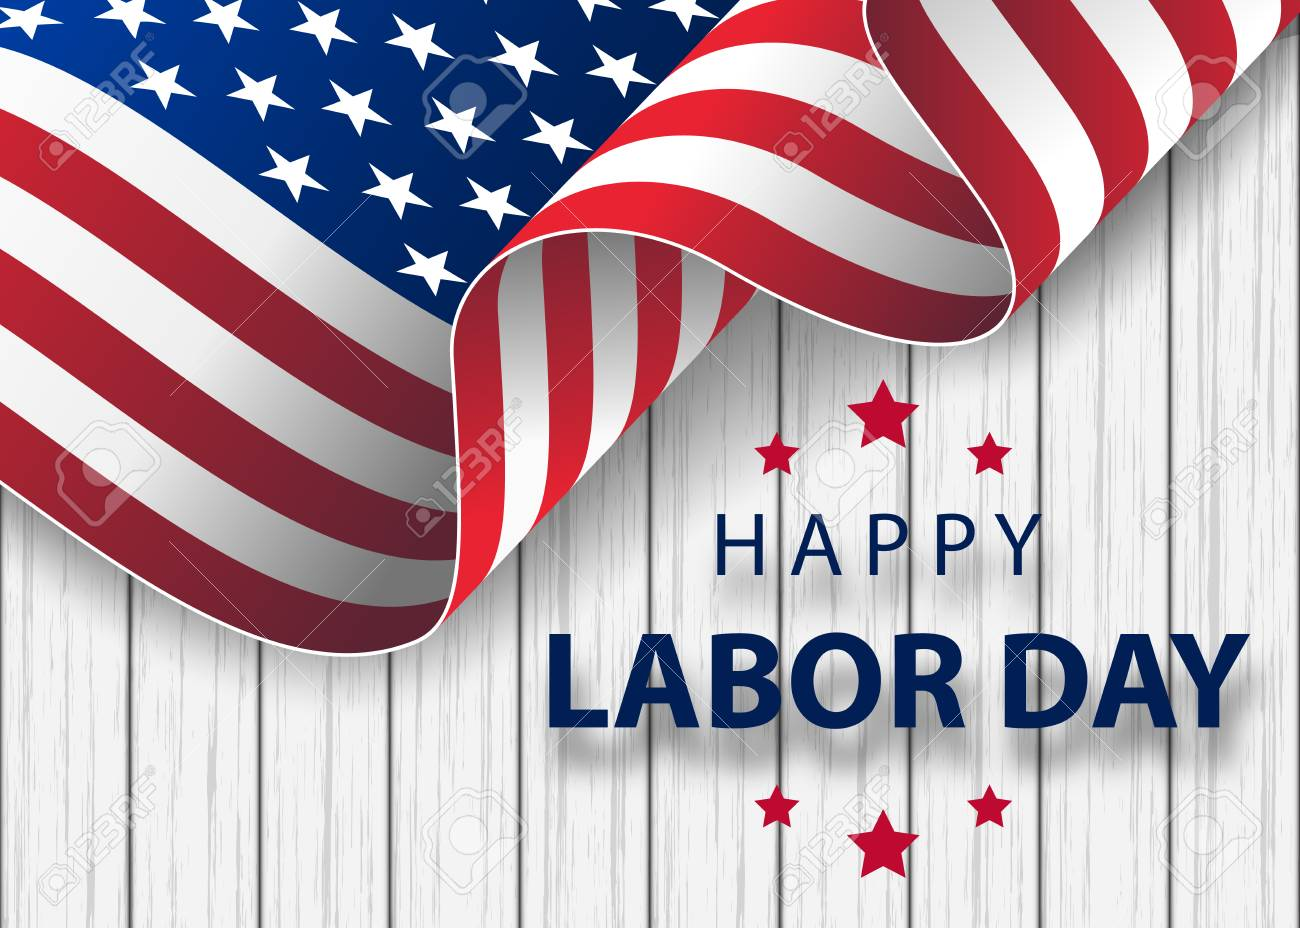 waving American flag with typography Labor Day, September 7th. Happy Labor Day holiday banner with brush stroke background in United States national flag colors and hand lettering text design. - 109882619